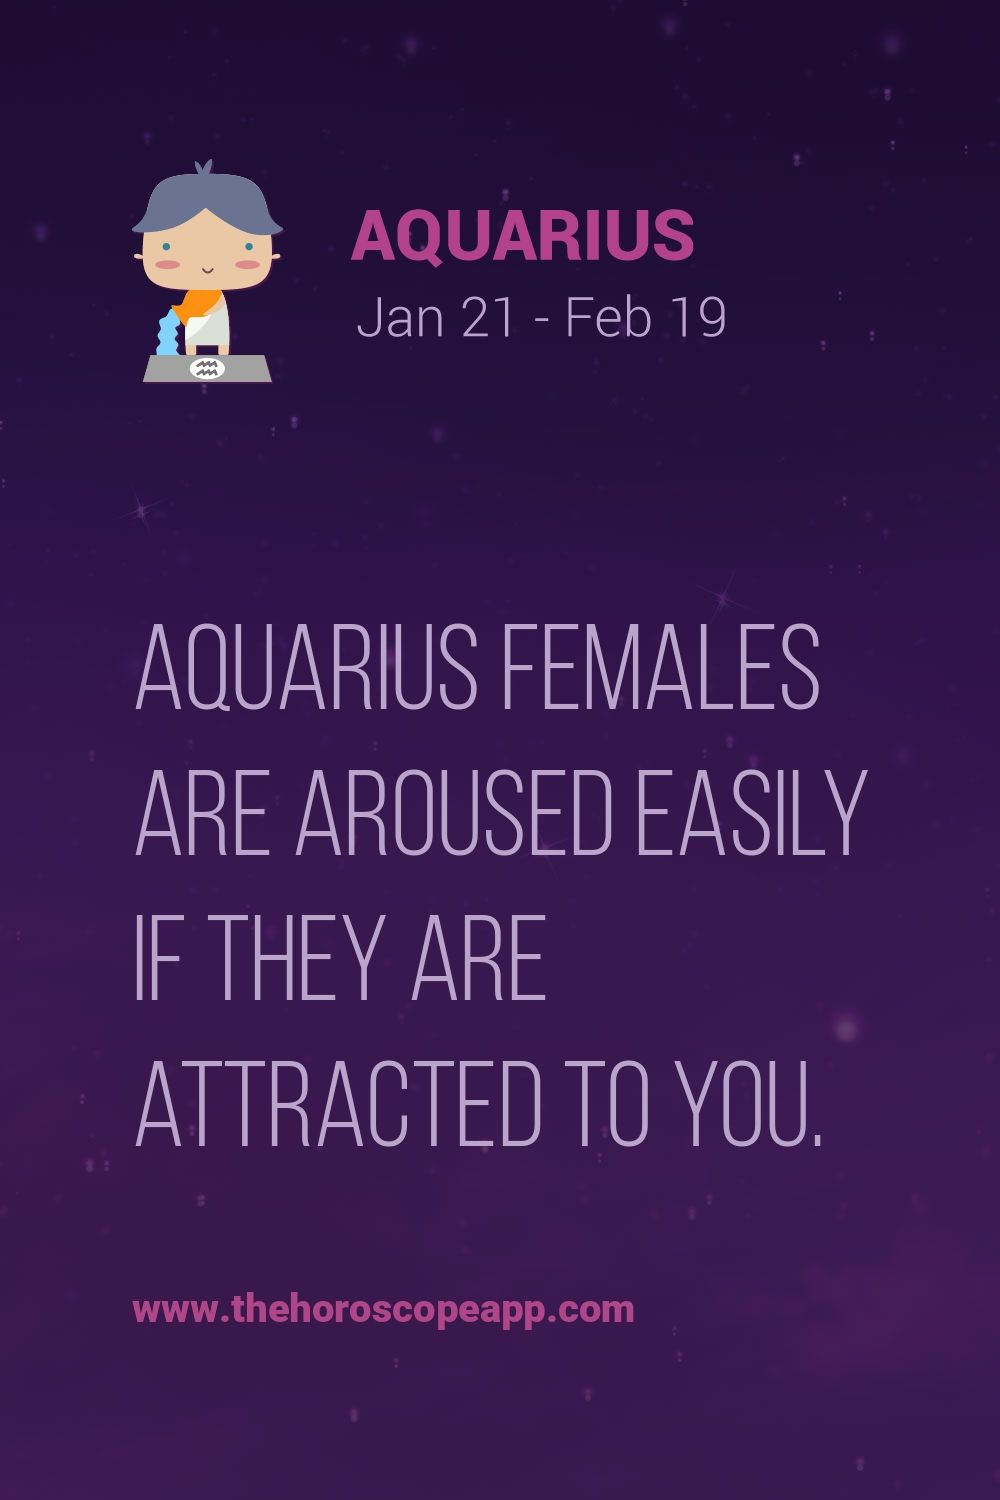 Aquarius females are aroused easily if they are attracted to you